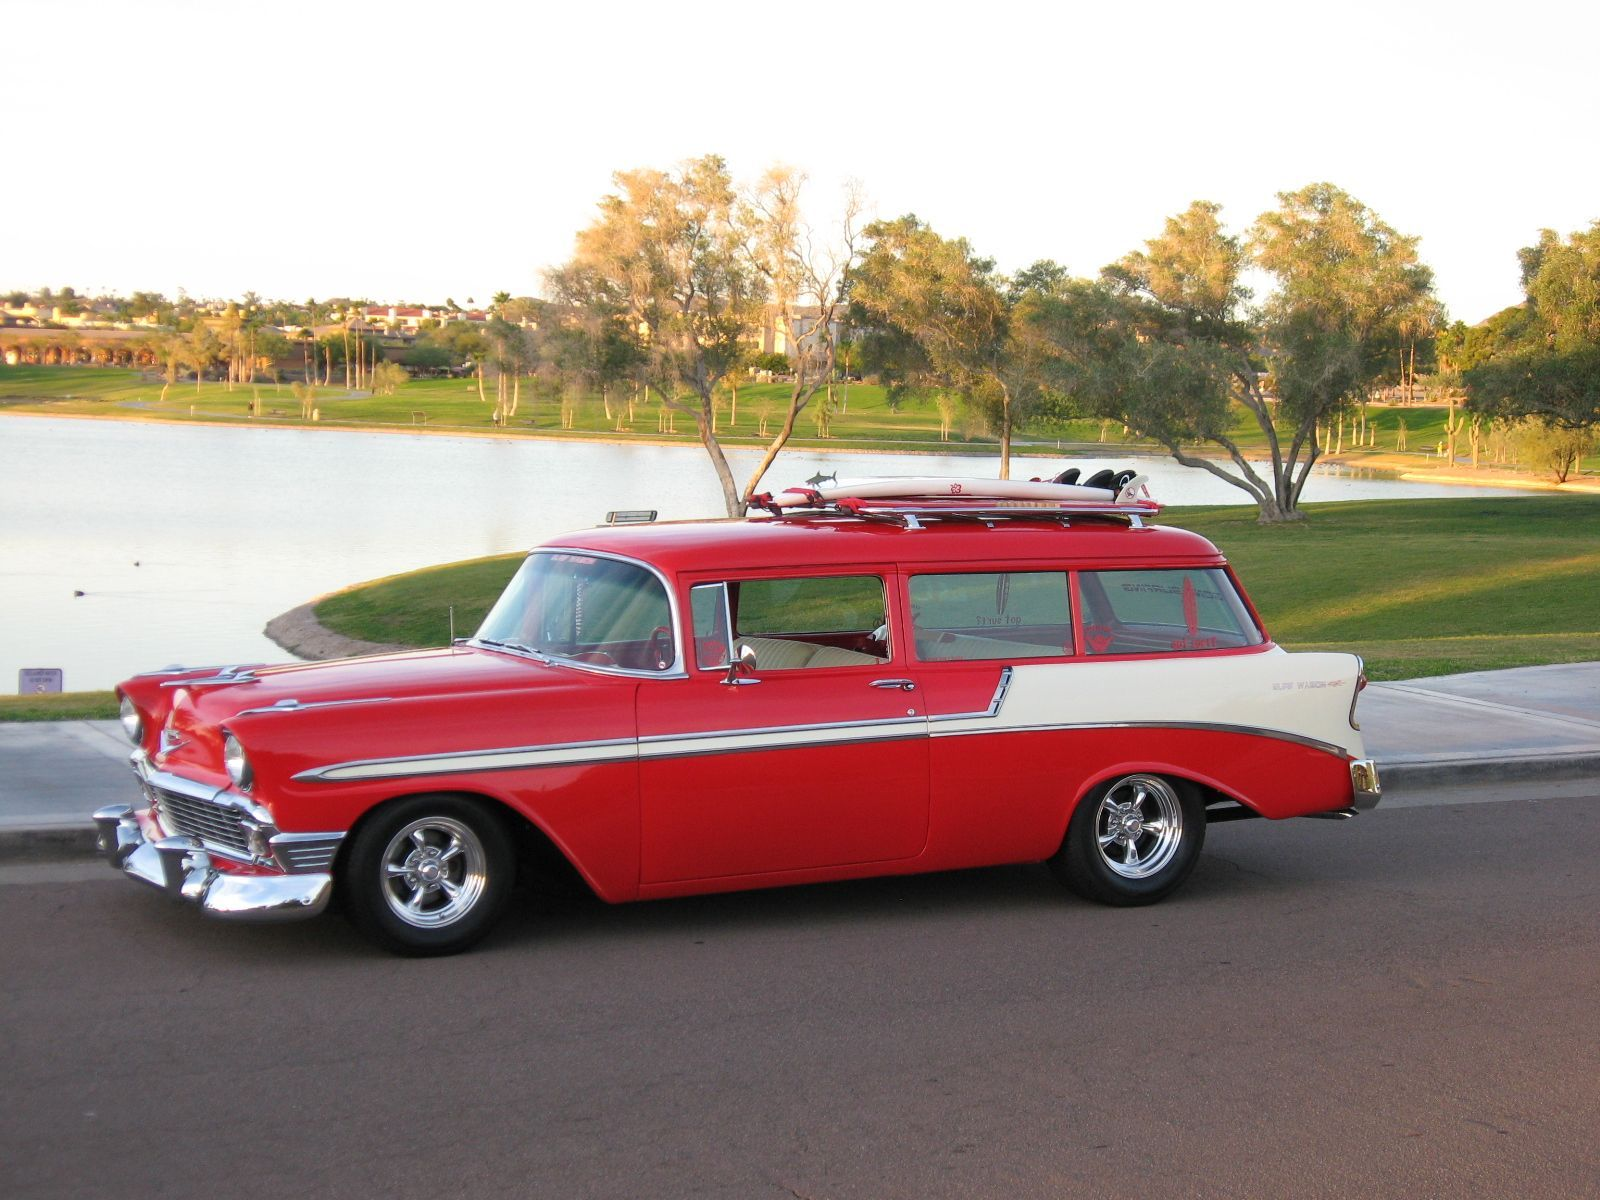 383ci stroker crate engine small block gm style longblock blueprint engines customer gary waugh has this beautiful summer ready 1956 chevy surf wagon installed under the hood is our very own bp3834ct1 malvernweather Choice Image